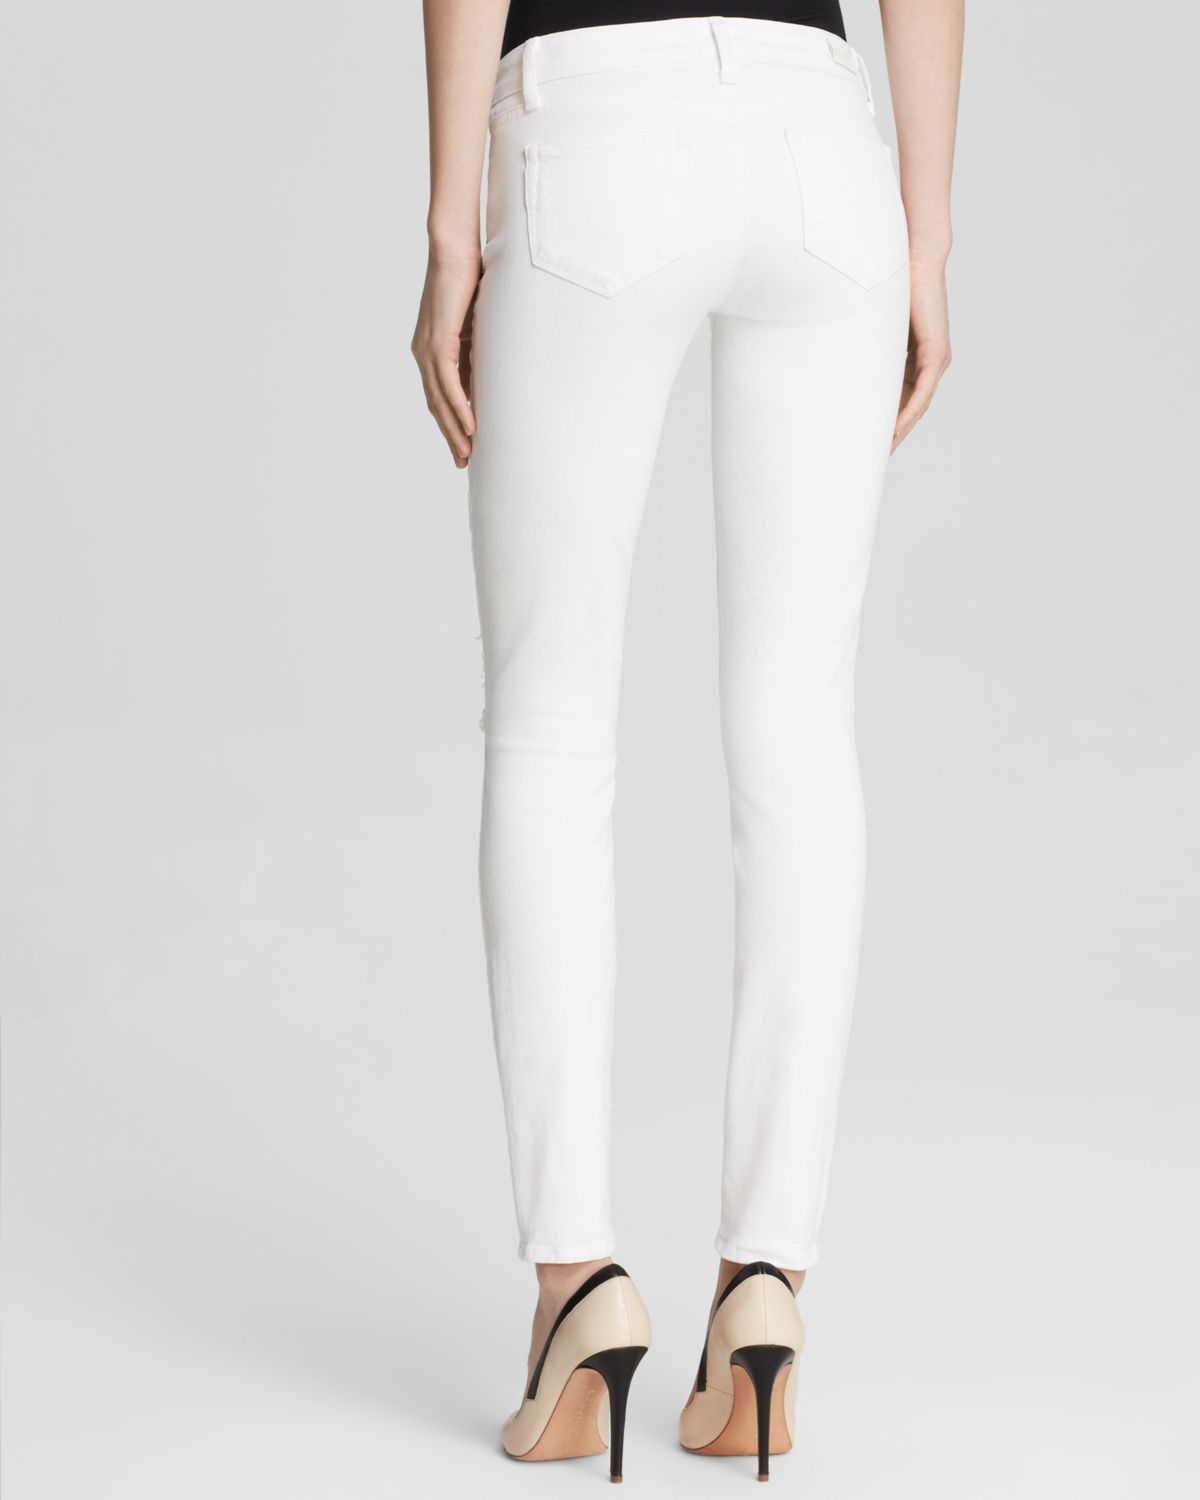 Paige Denim White Skinny Jeans - Jeans Am